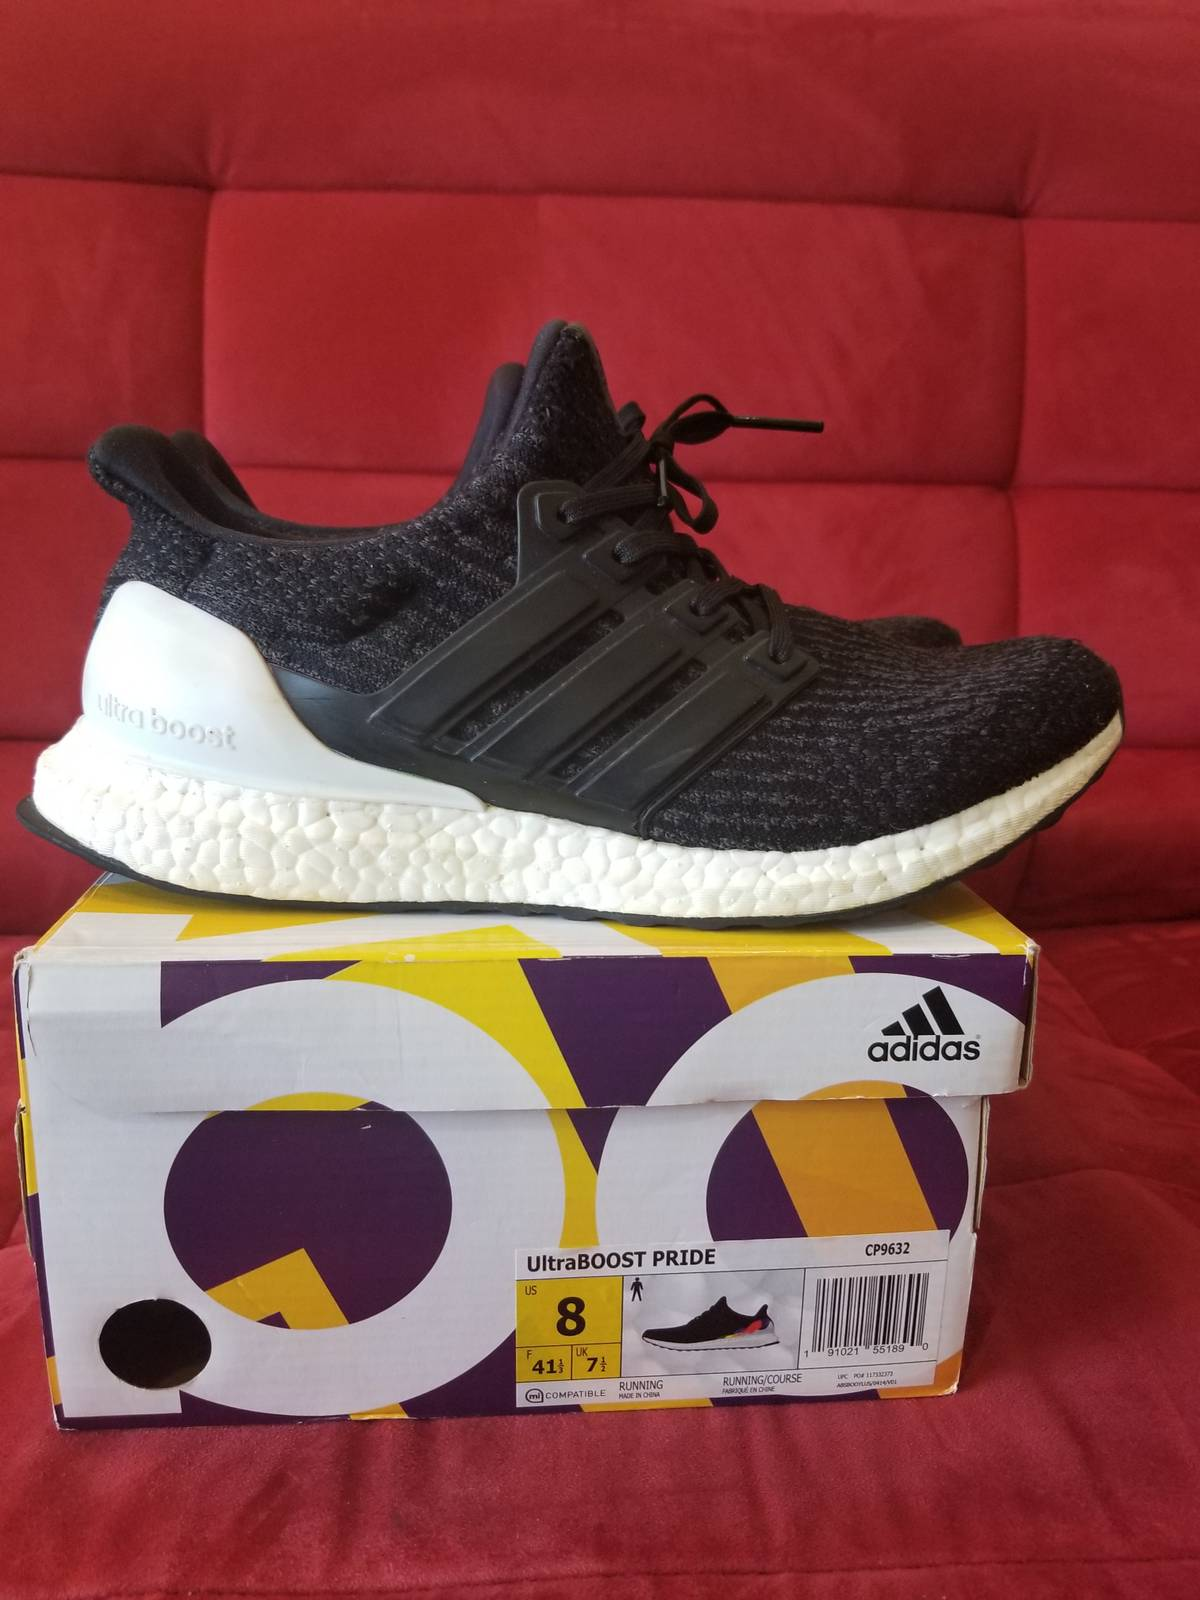 cheap for discount 7b8e1 a72e5 Adidas Adidas Ultra Boost Pride Custom Size 8 - Low-Top Sneakers for Sale -  Grailed